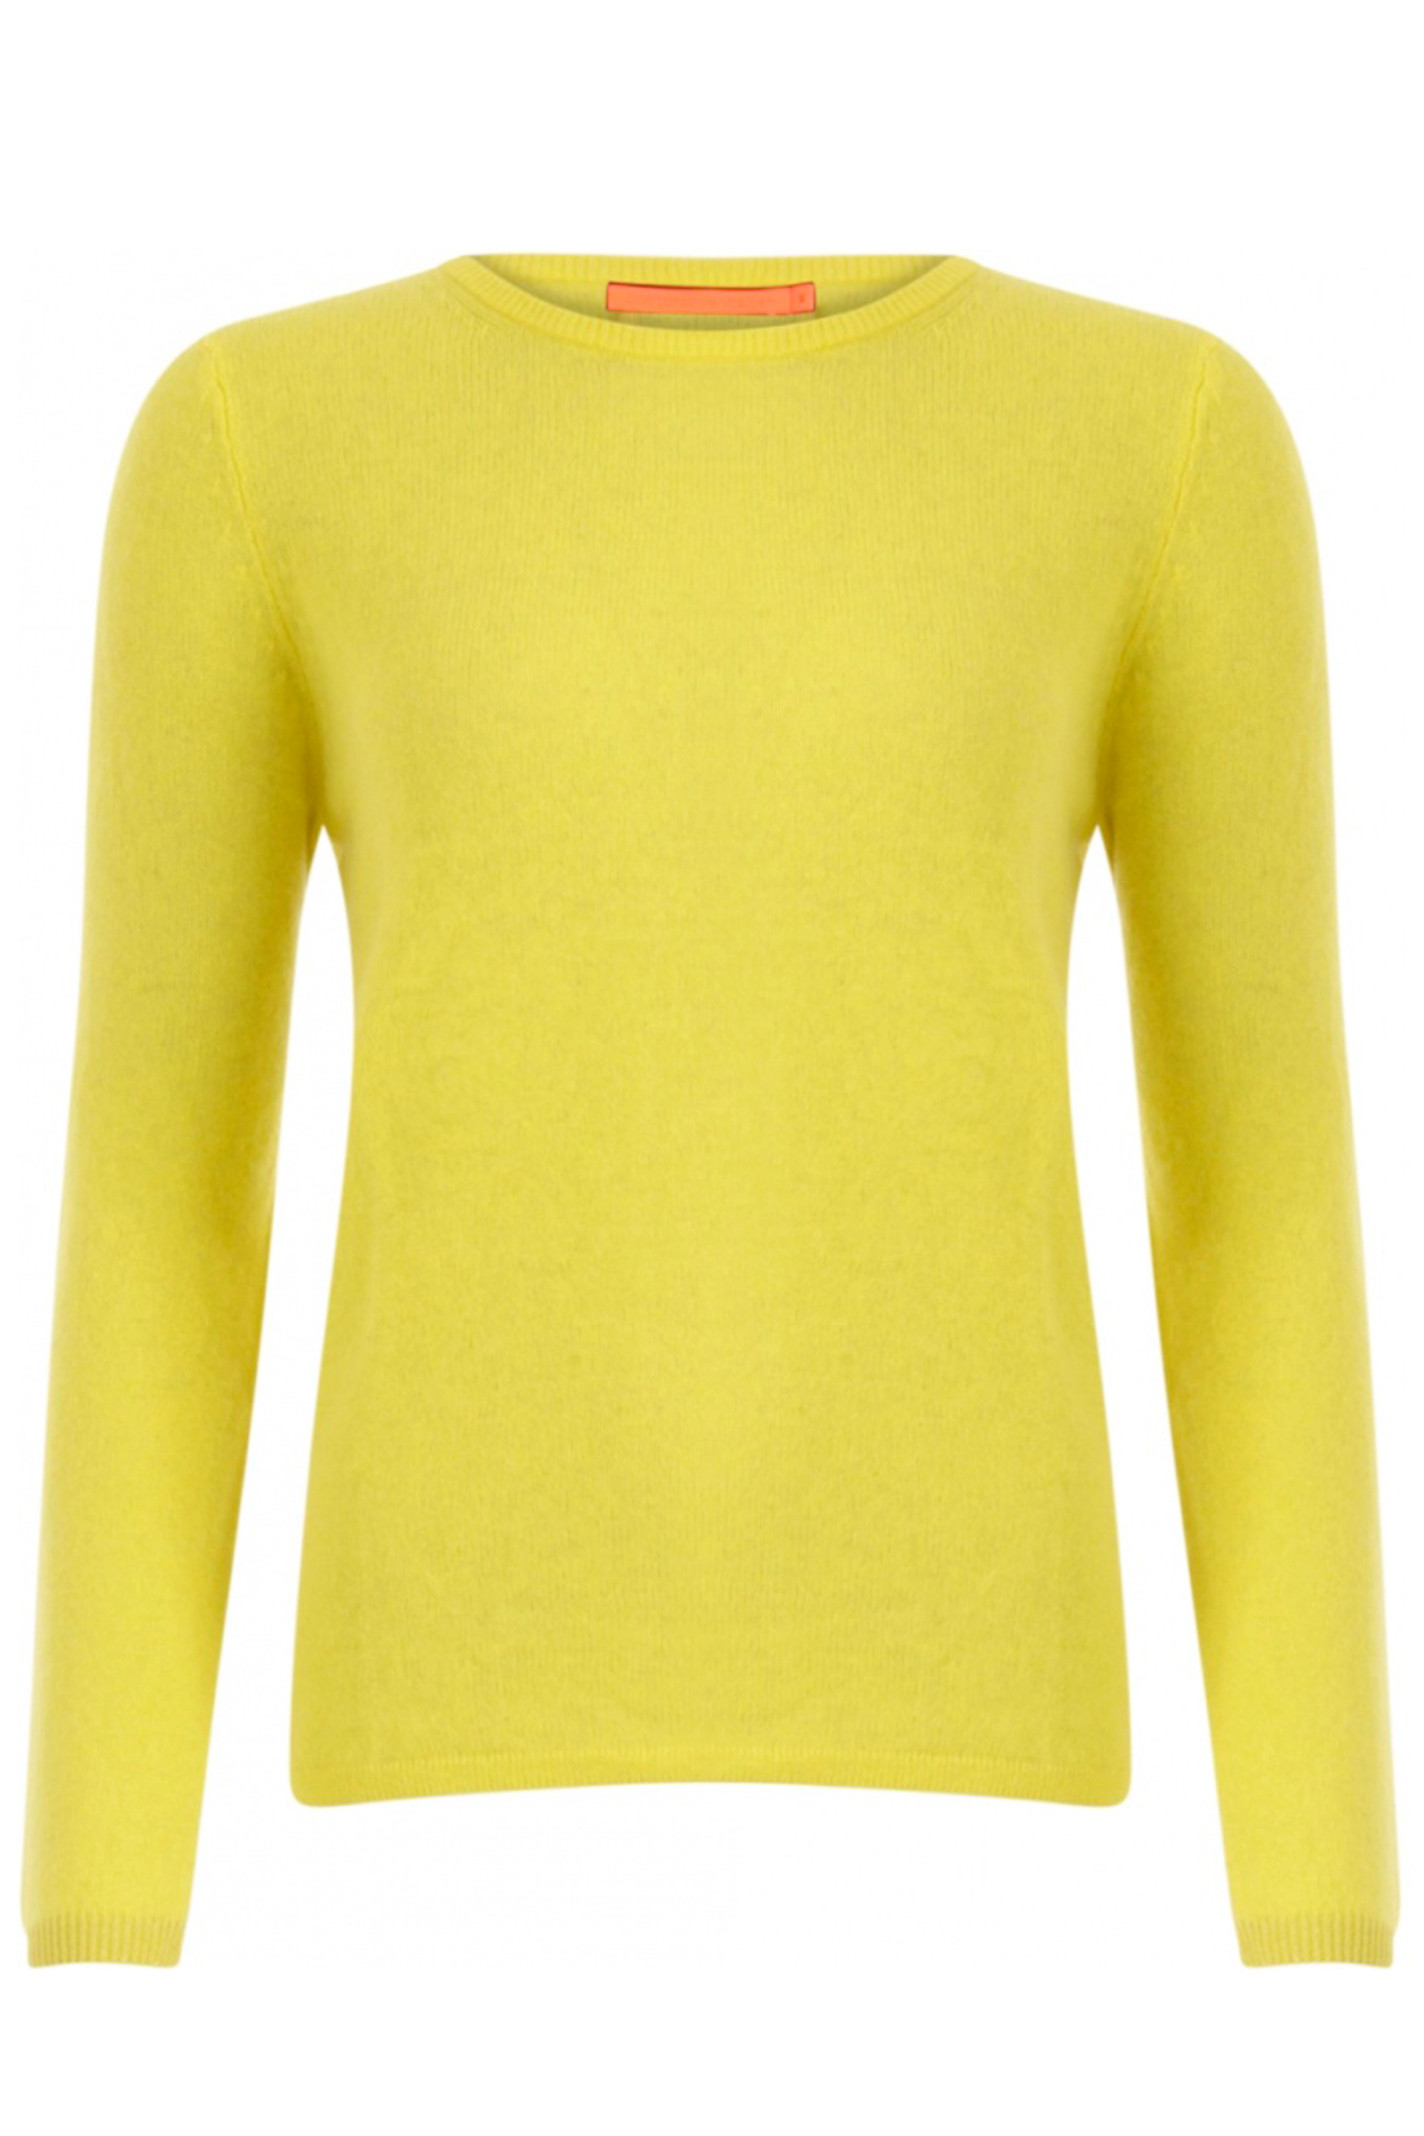 Coster Copenhagen B0010 Yellow